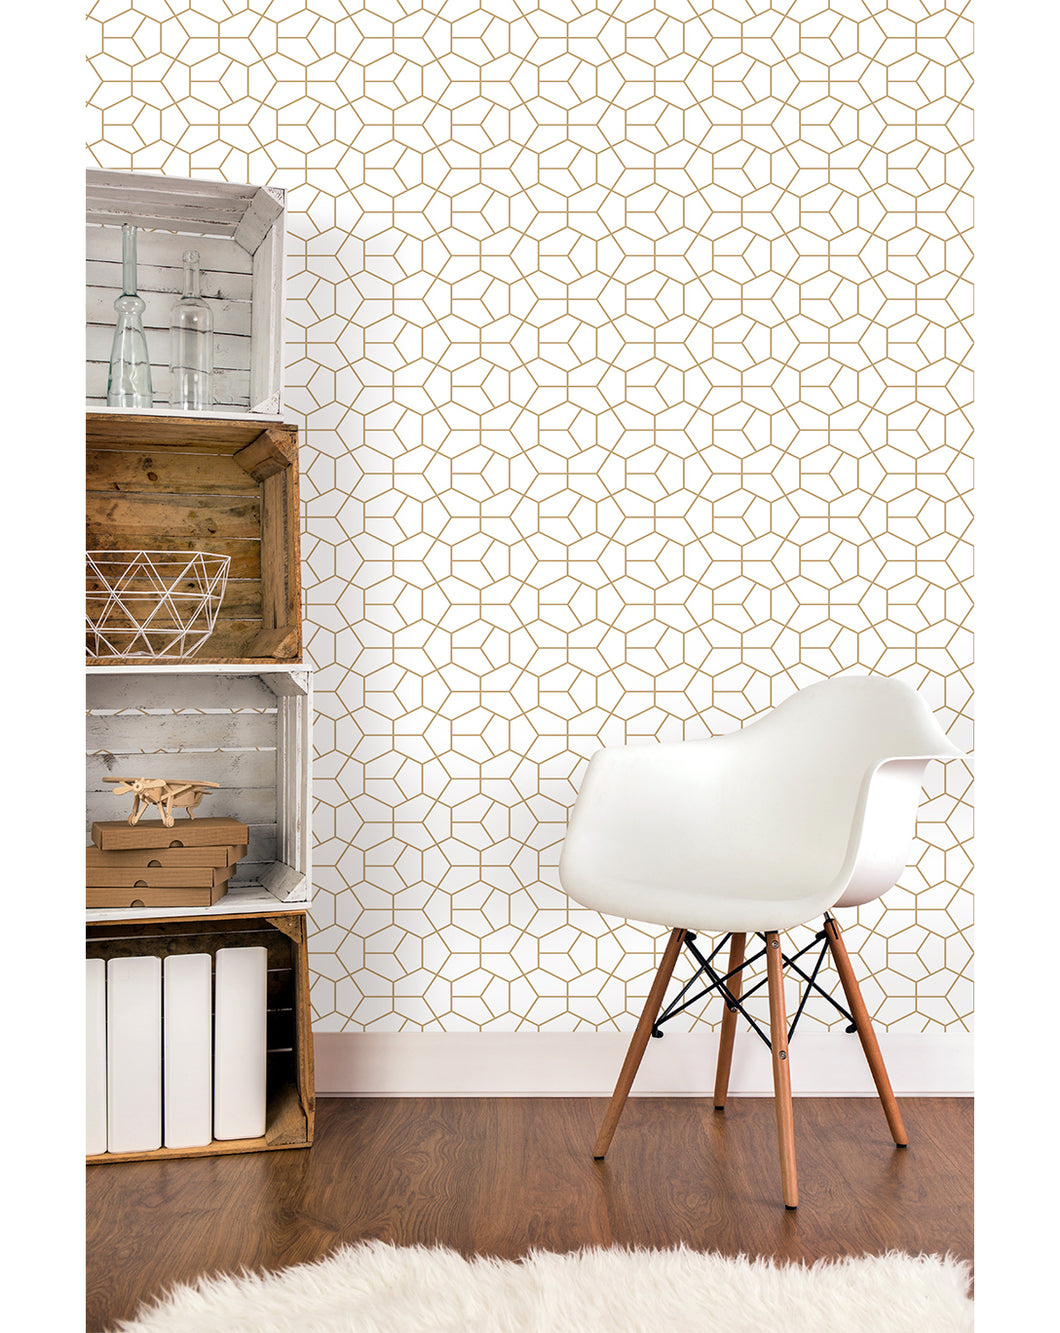 Self Adhesive Abstract Geometry Gold Hexagon Removable Wallpaper Costacover